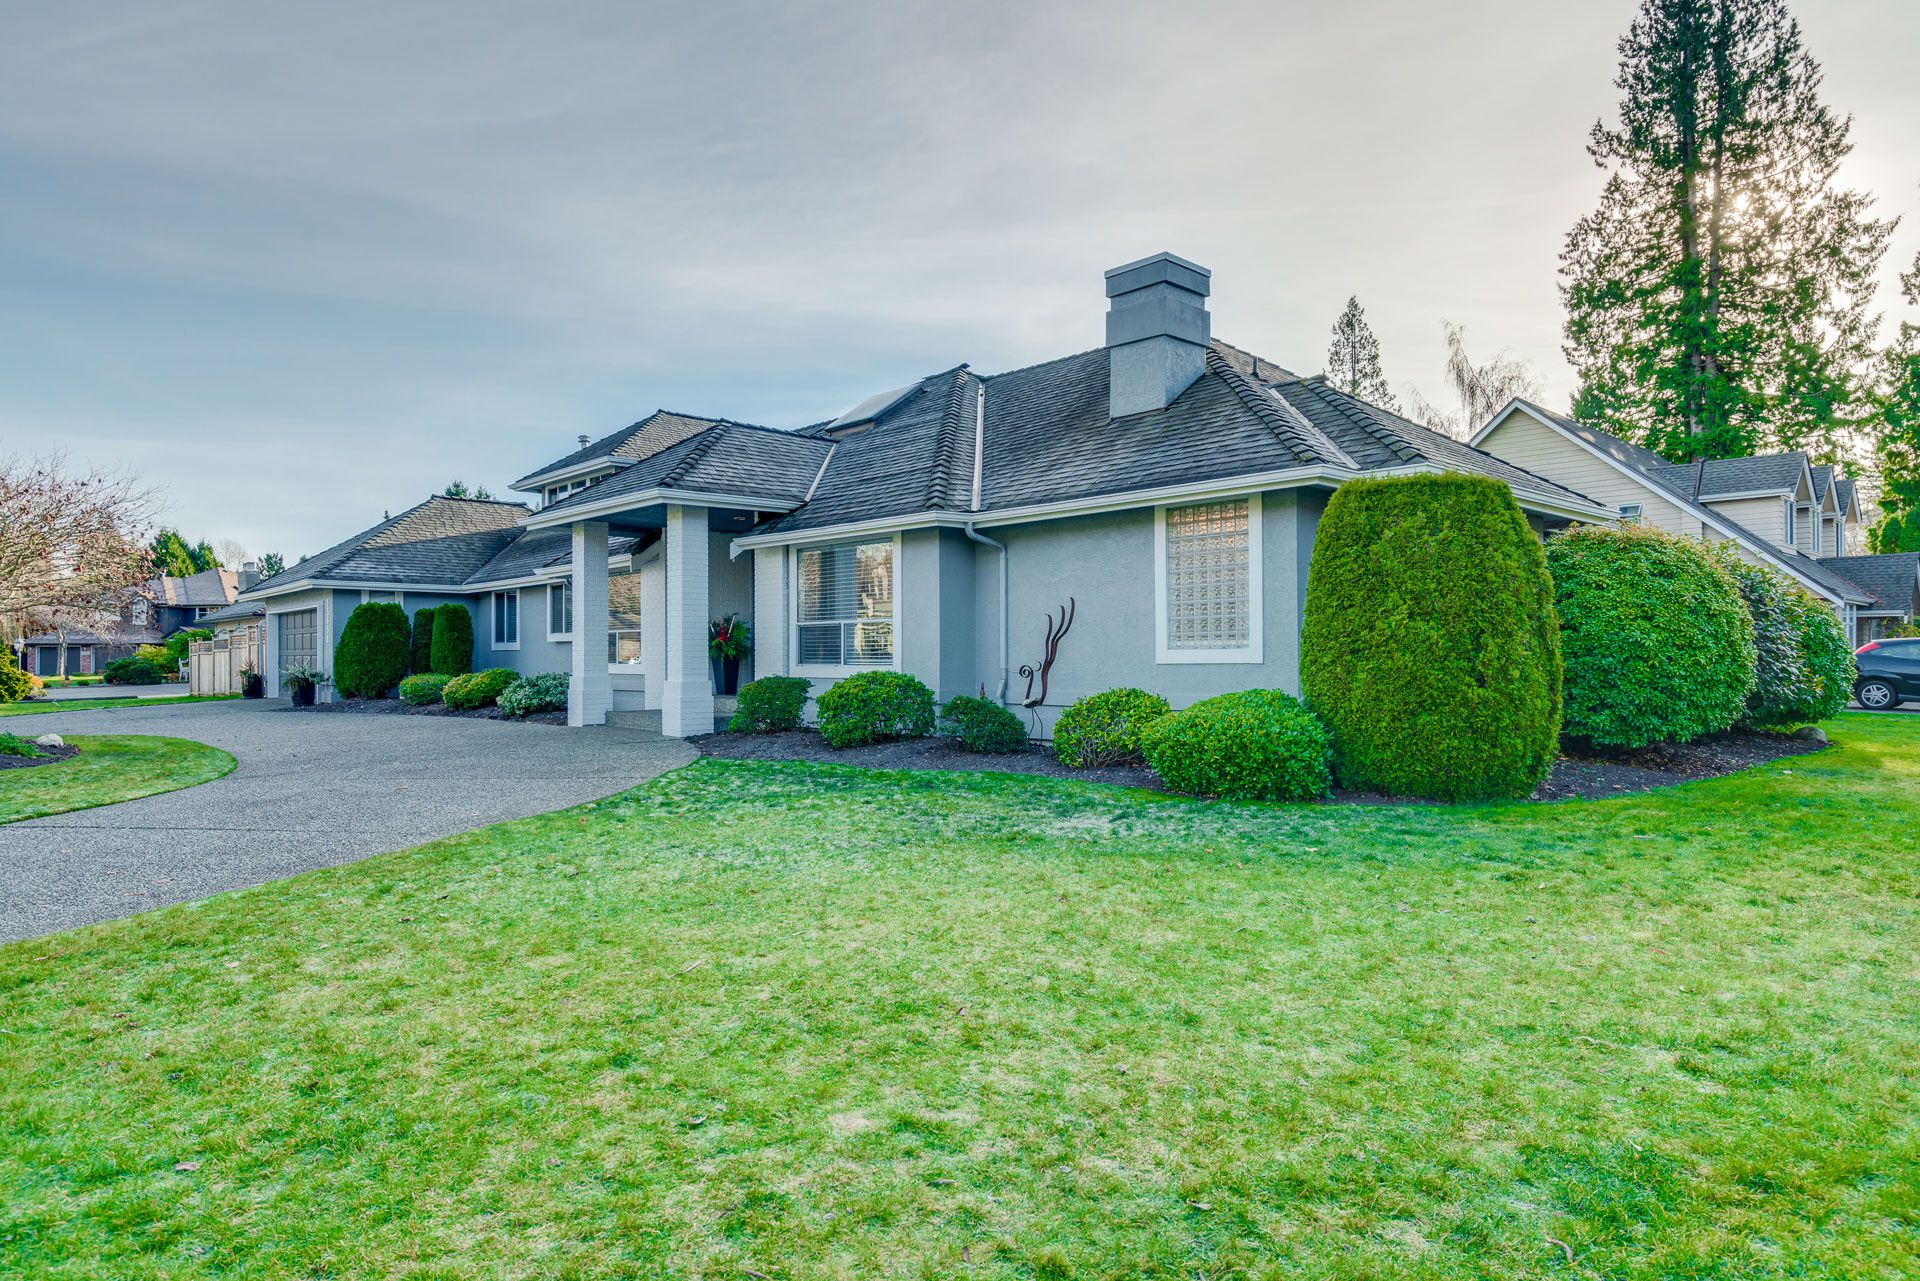 """Main Photo: 13658 19 Avenue in Surrey: Sunnyside Park Surrey House for sale in """"BELL PARK"""" (South Surrey White Rock)  : MLS®# R2326821"""